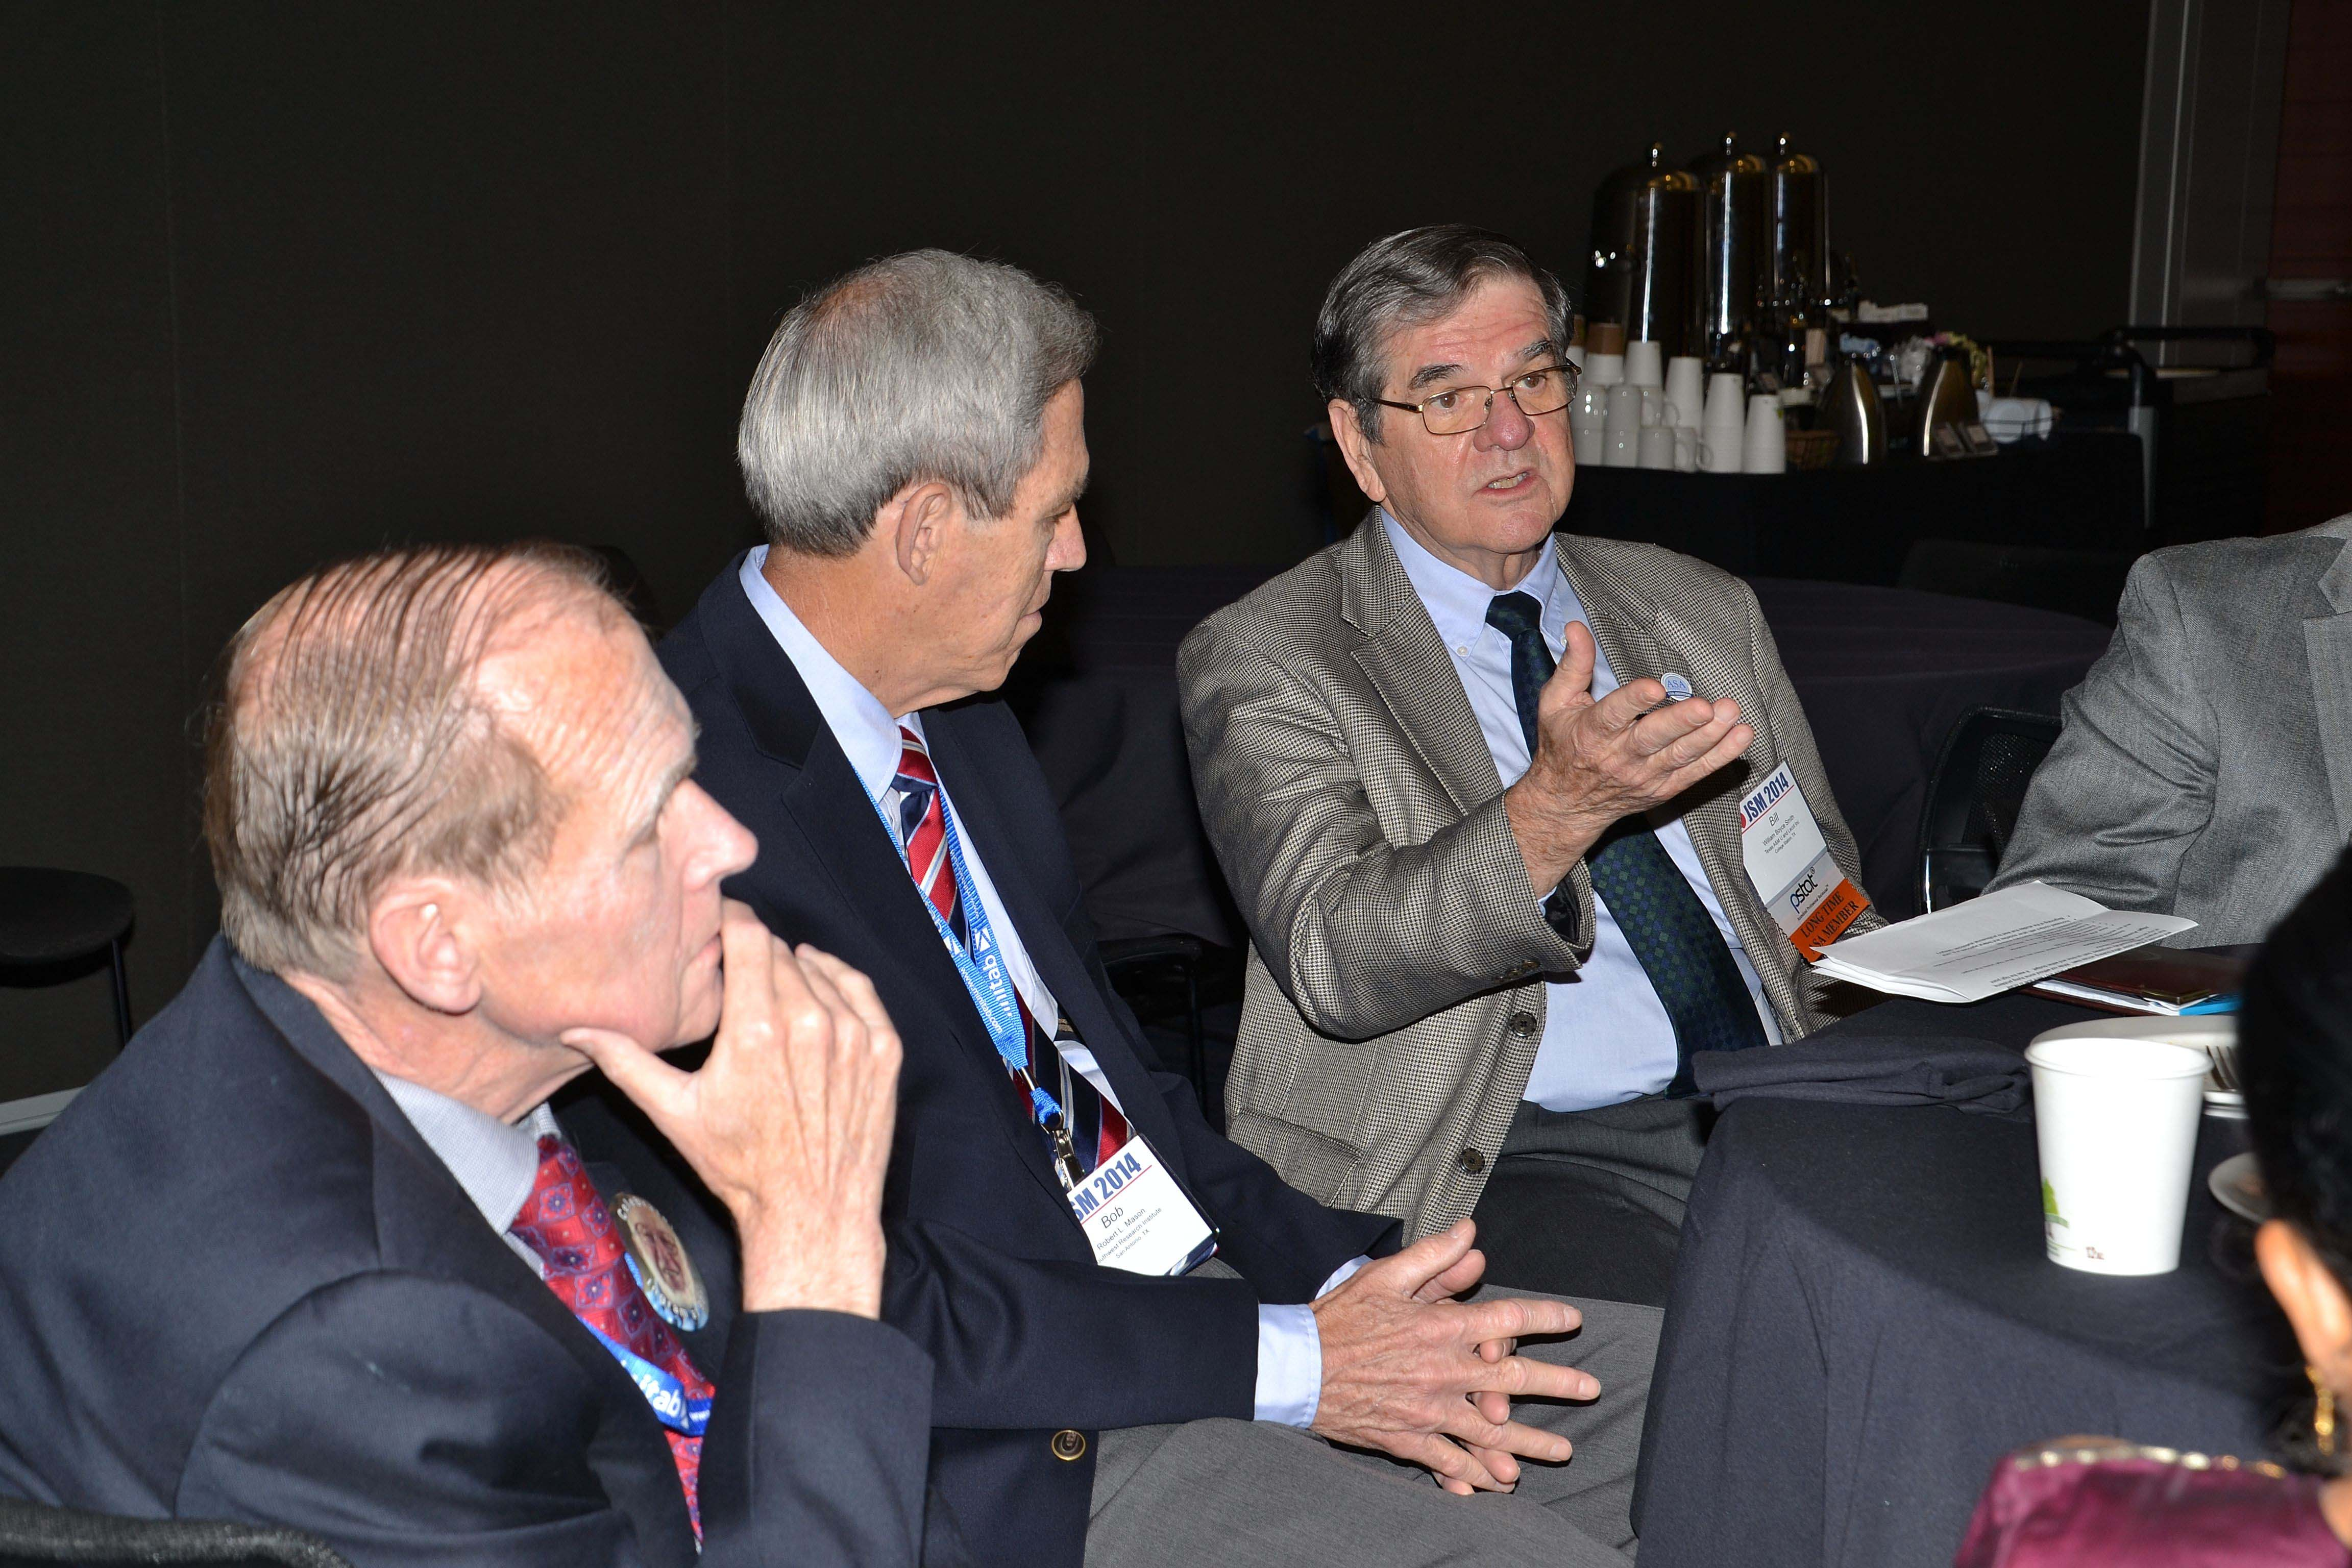 From left: Fritz Scheuren, Bob Mason, and Bill Smith reminisce during a roundtable discussion